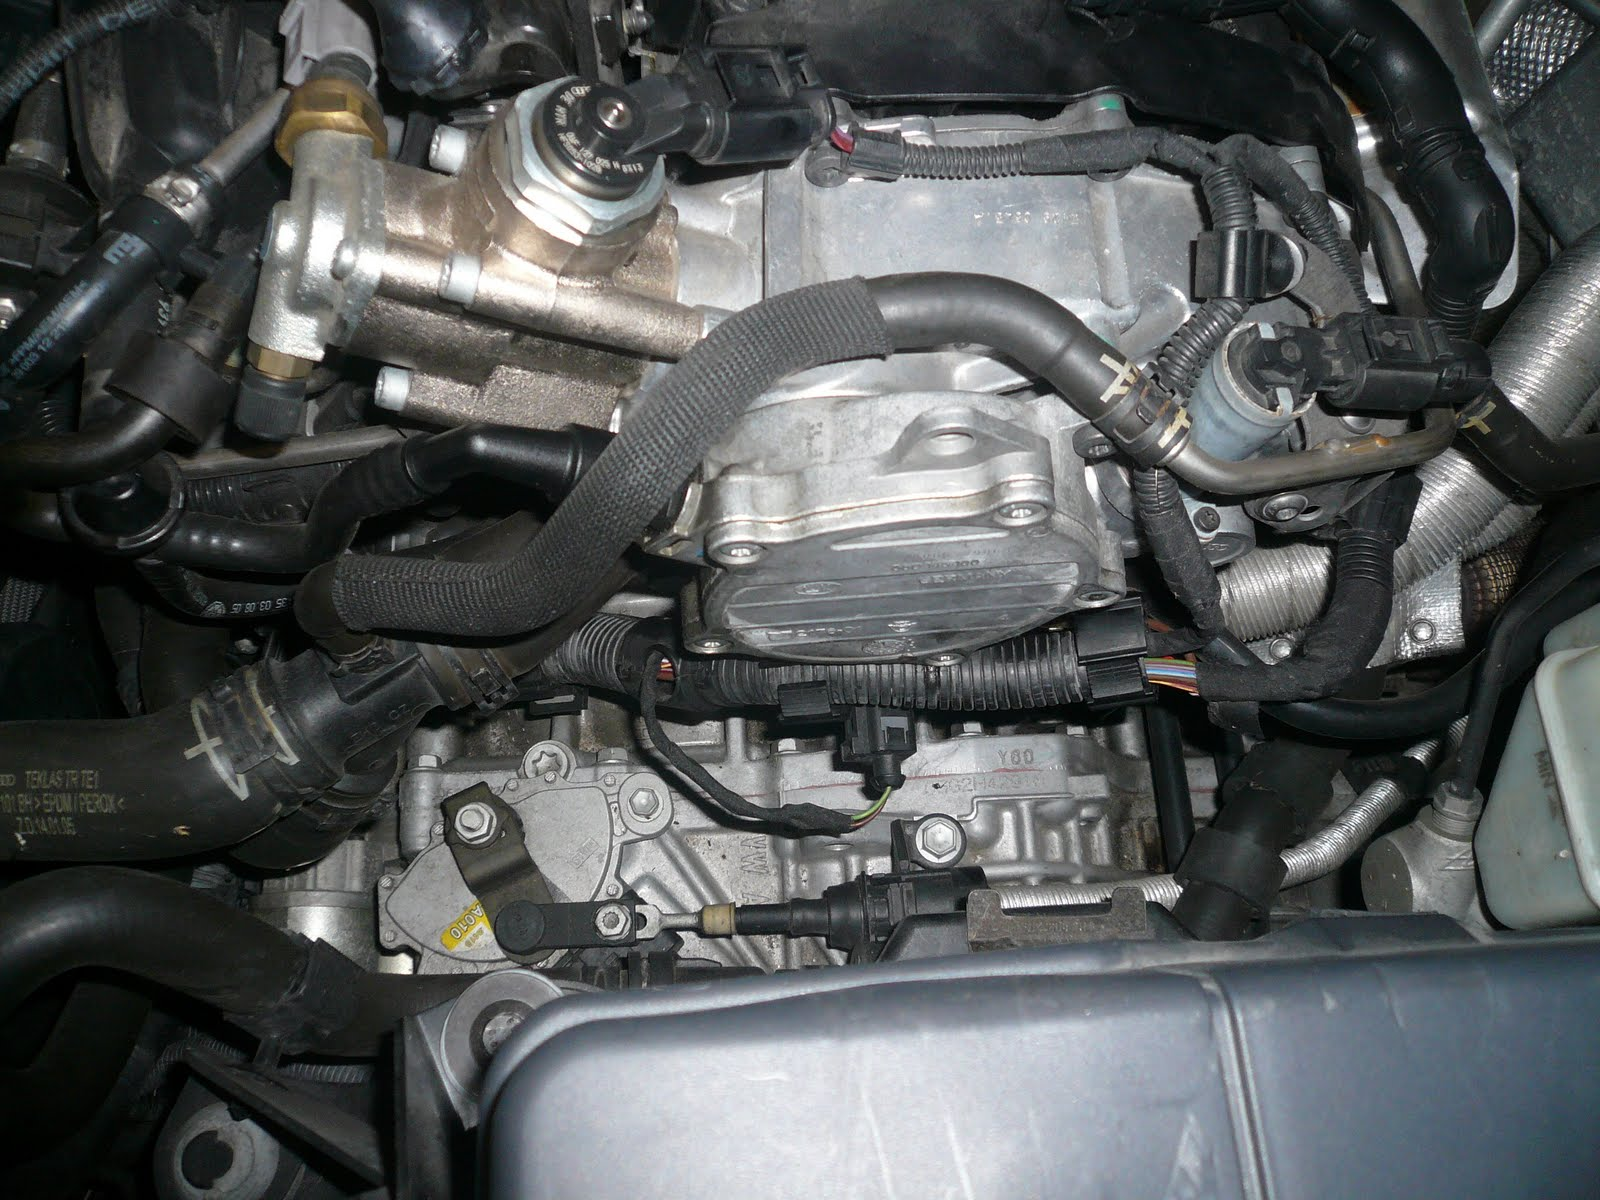 2006 vw jetta gli 2 0t fsi engine diagram wiring diagram